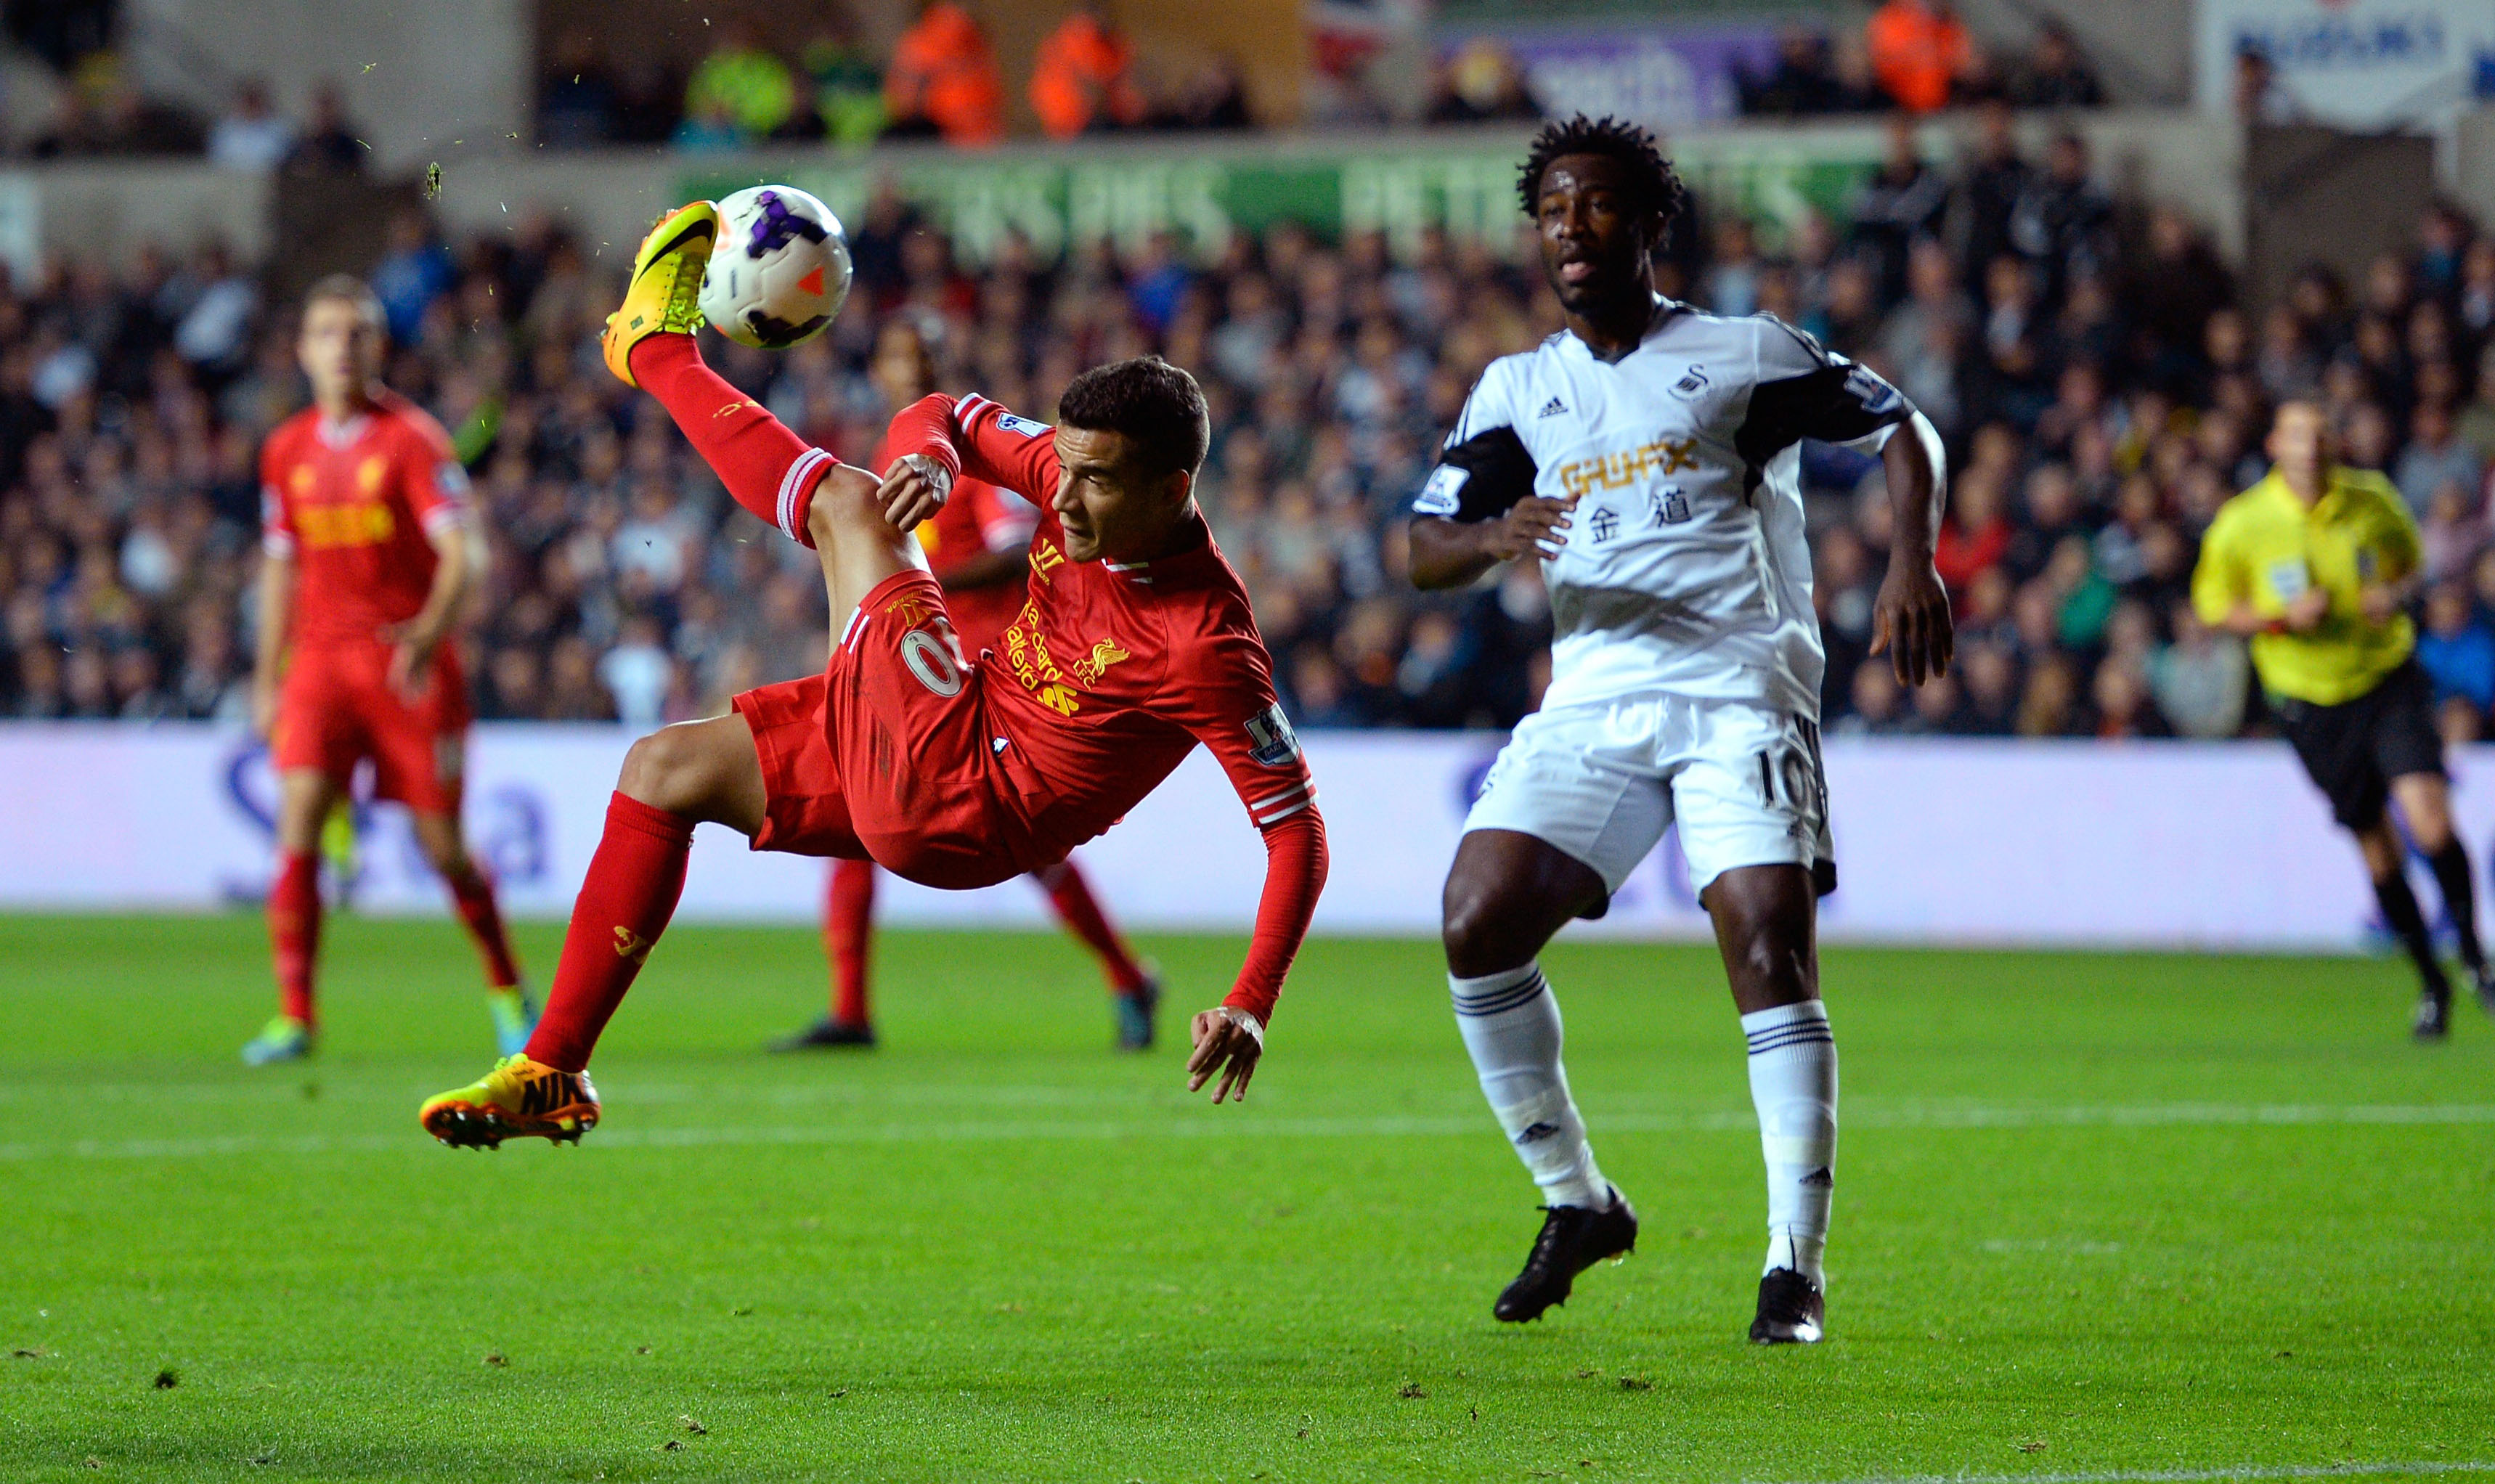 SWANSEA, WALES - SEPTEMBER 16:  Liverpool player Phillipe Coutinho (l) trys an overhead kick watched by Wilfried Bony of Swansea during the Barclays Premier League match between Swansea City and Liverpool at Liberty Stadium on September 16, 2013 in Swansea, Wales.  (Photo by Stu Forster/Getty Images)